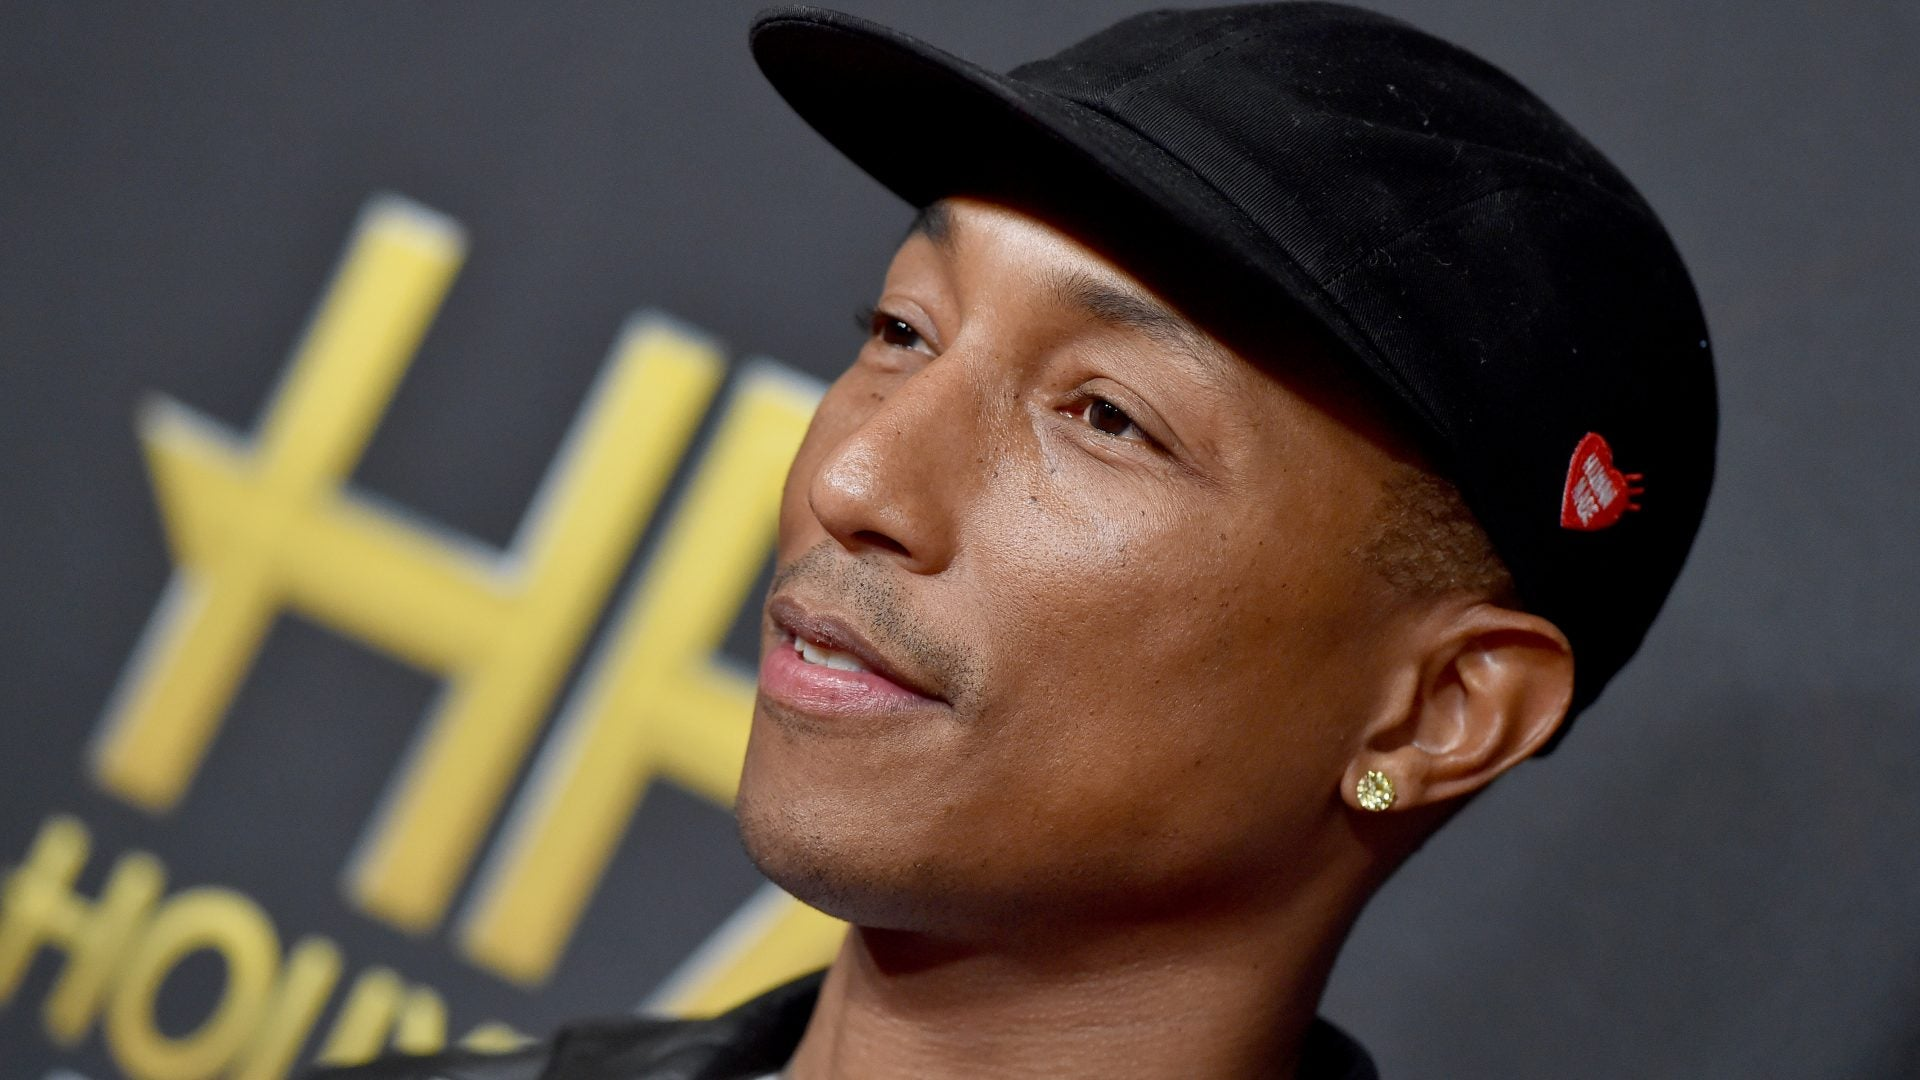 Pharrell Williams Launches A New Skincare Line Called Humanrace